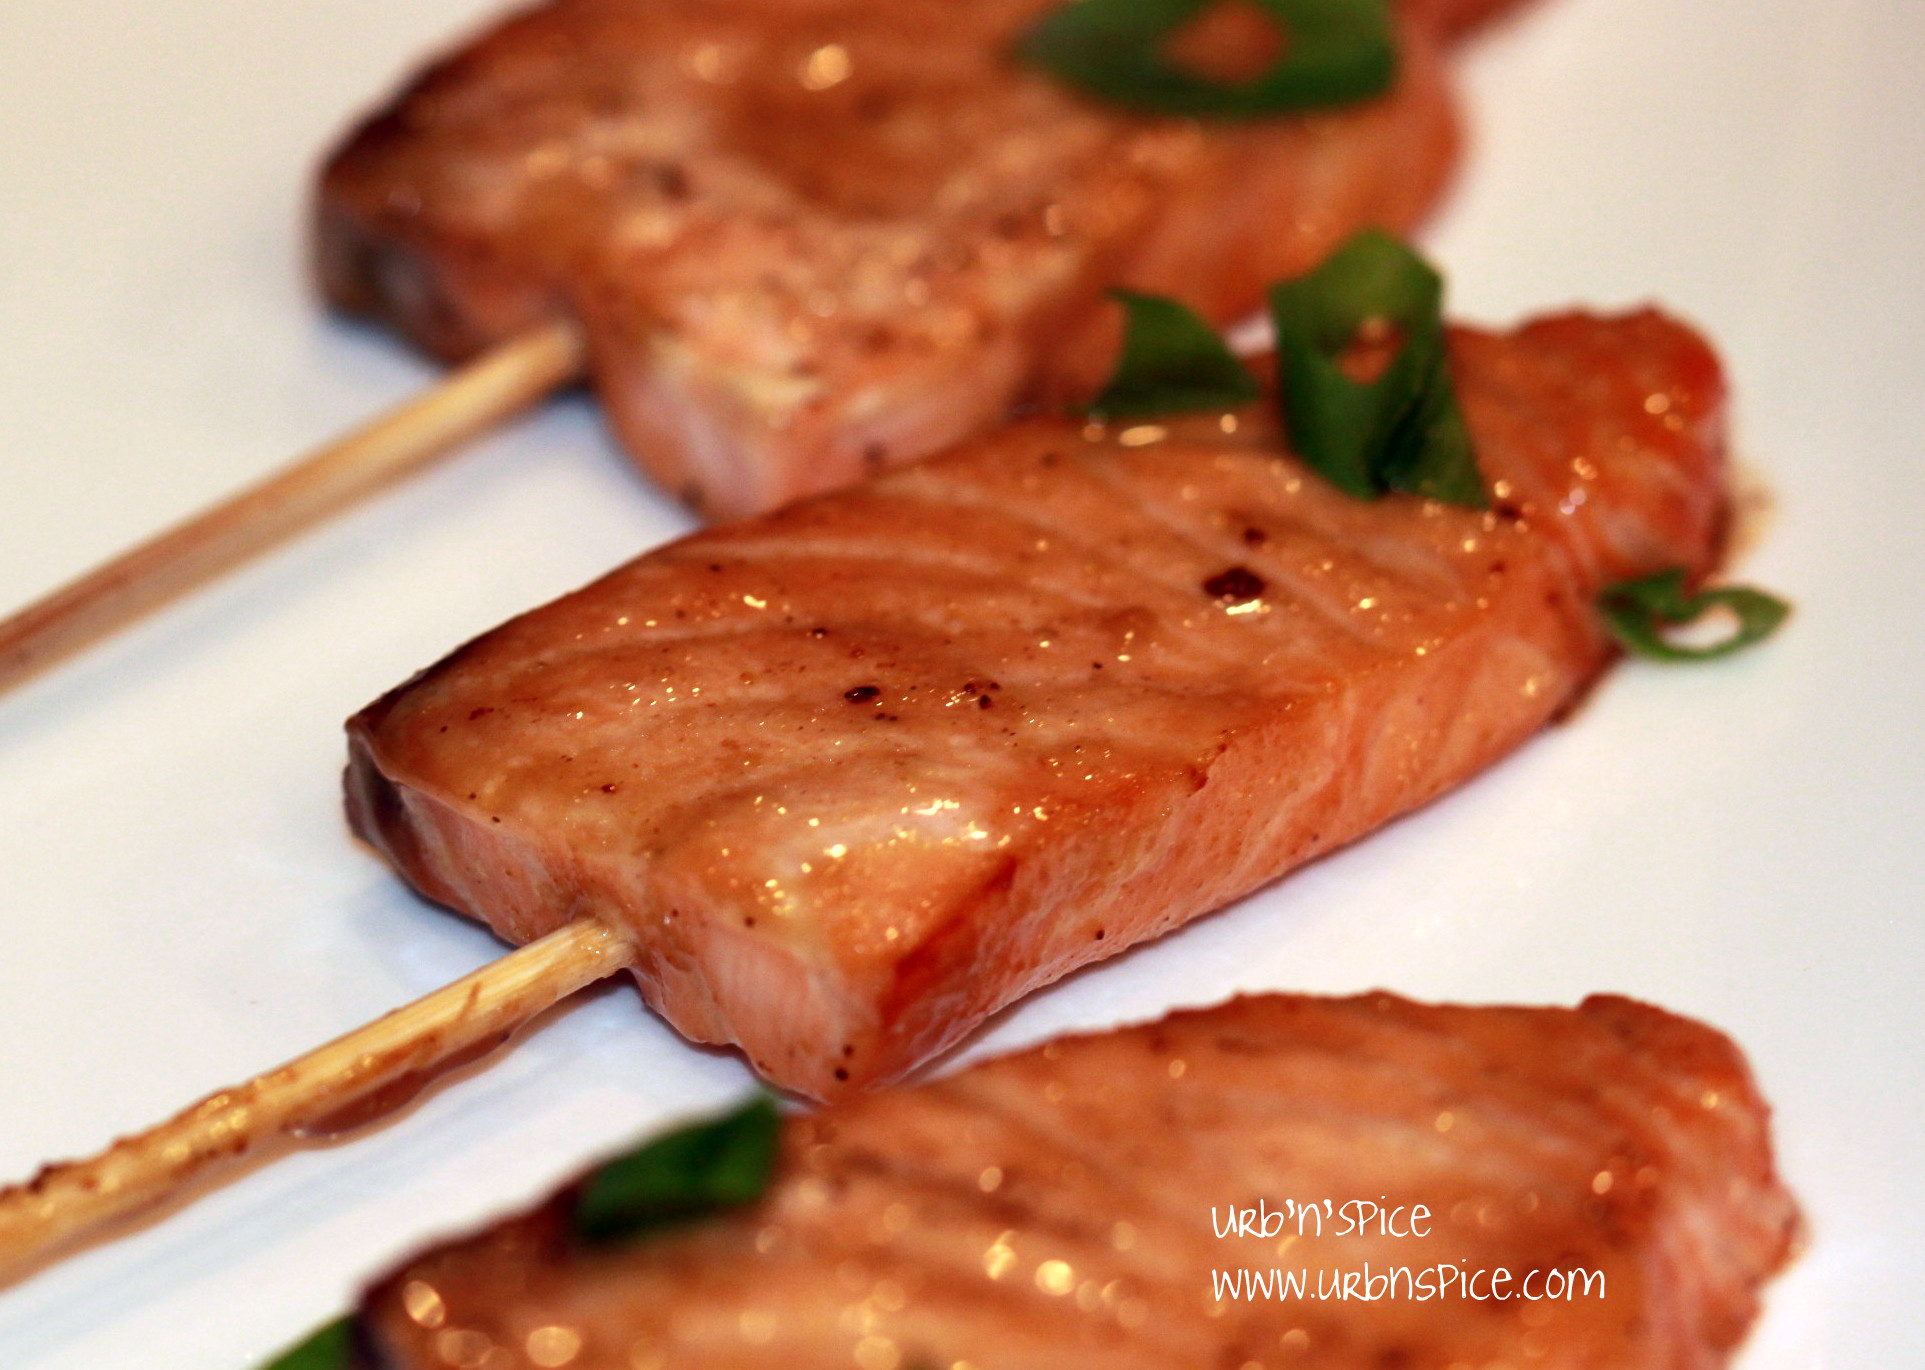 Potlatch Atlantic Salmon Skewer - Appetizer | urbnspice.com